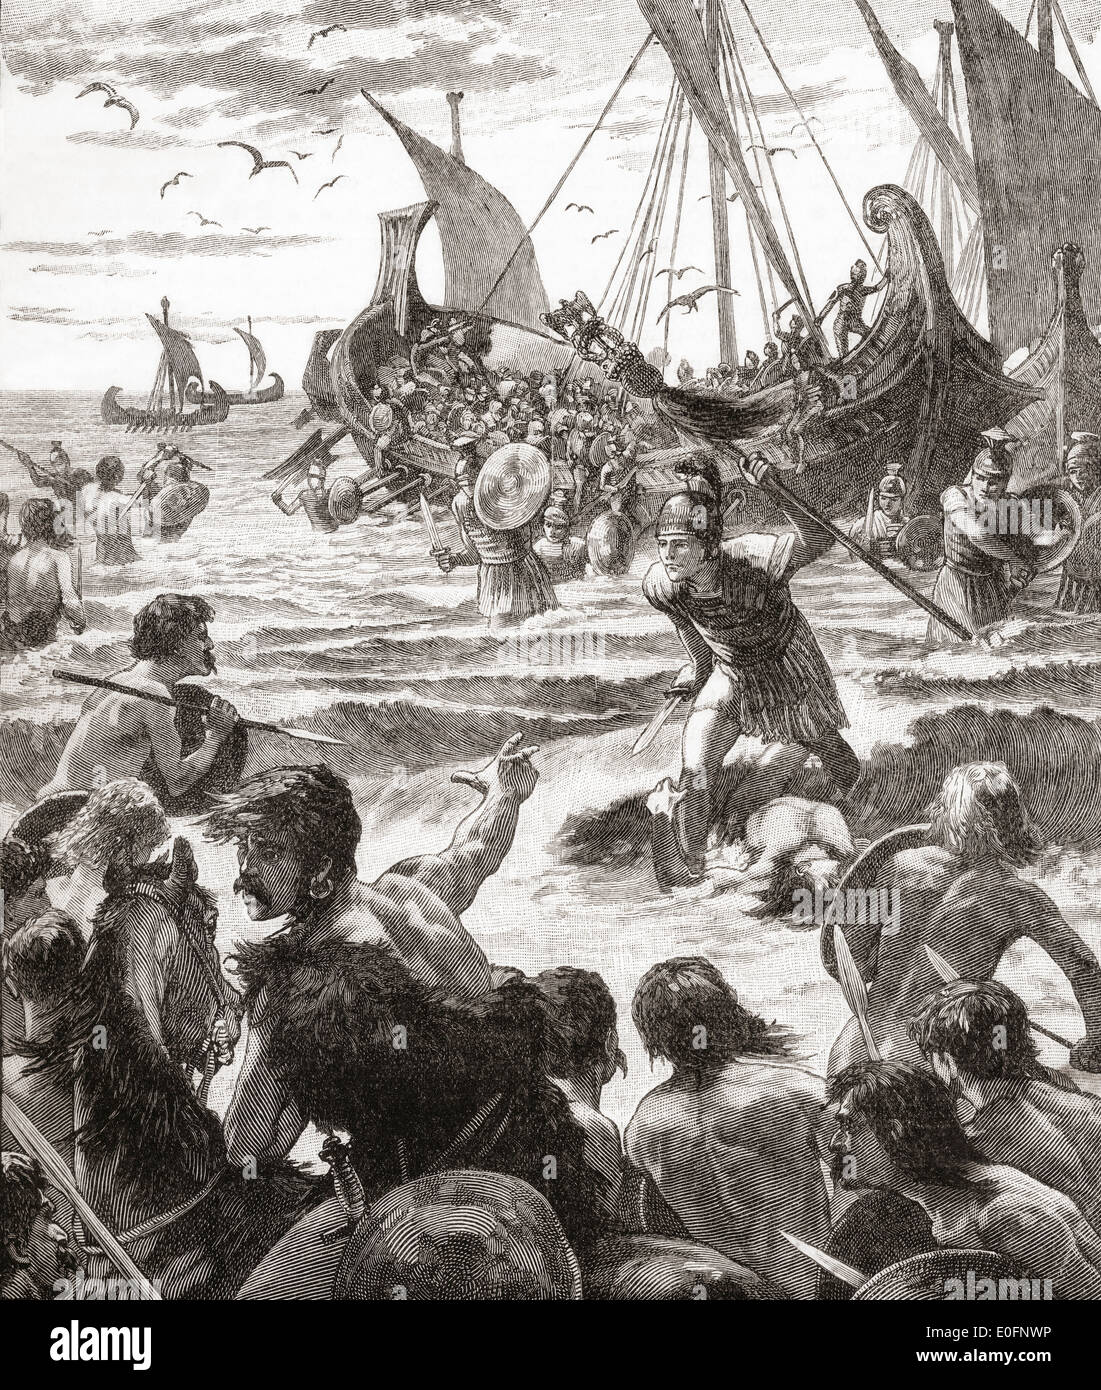 The landing of the Romans on the coast of Kent, England in AD43. - Stock Image